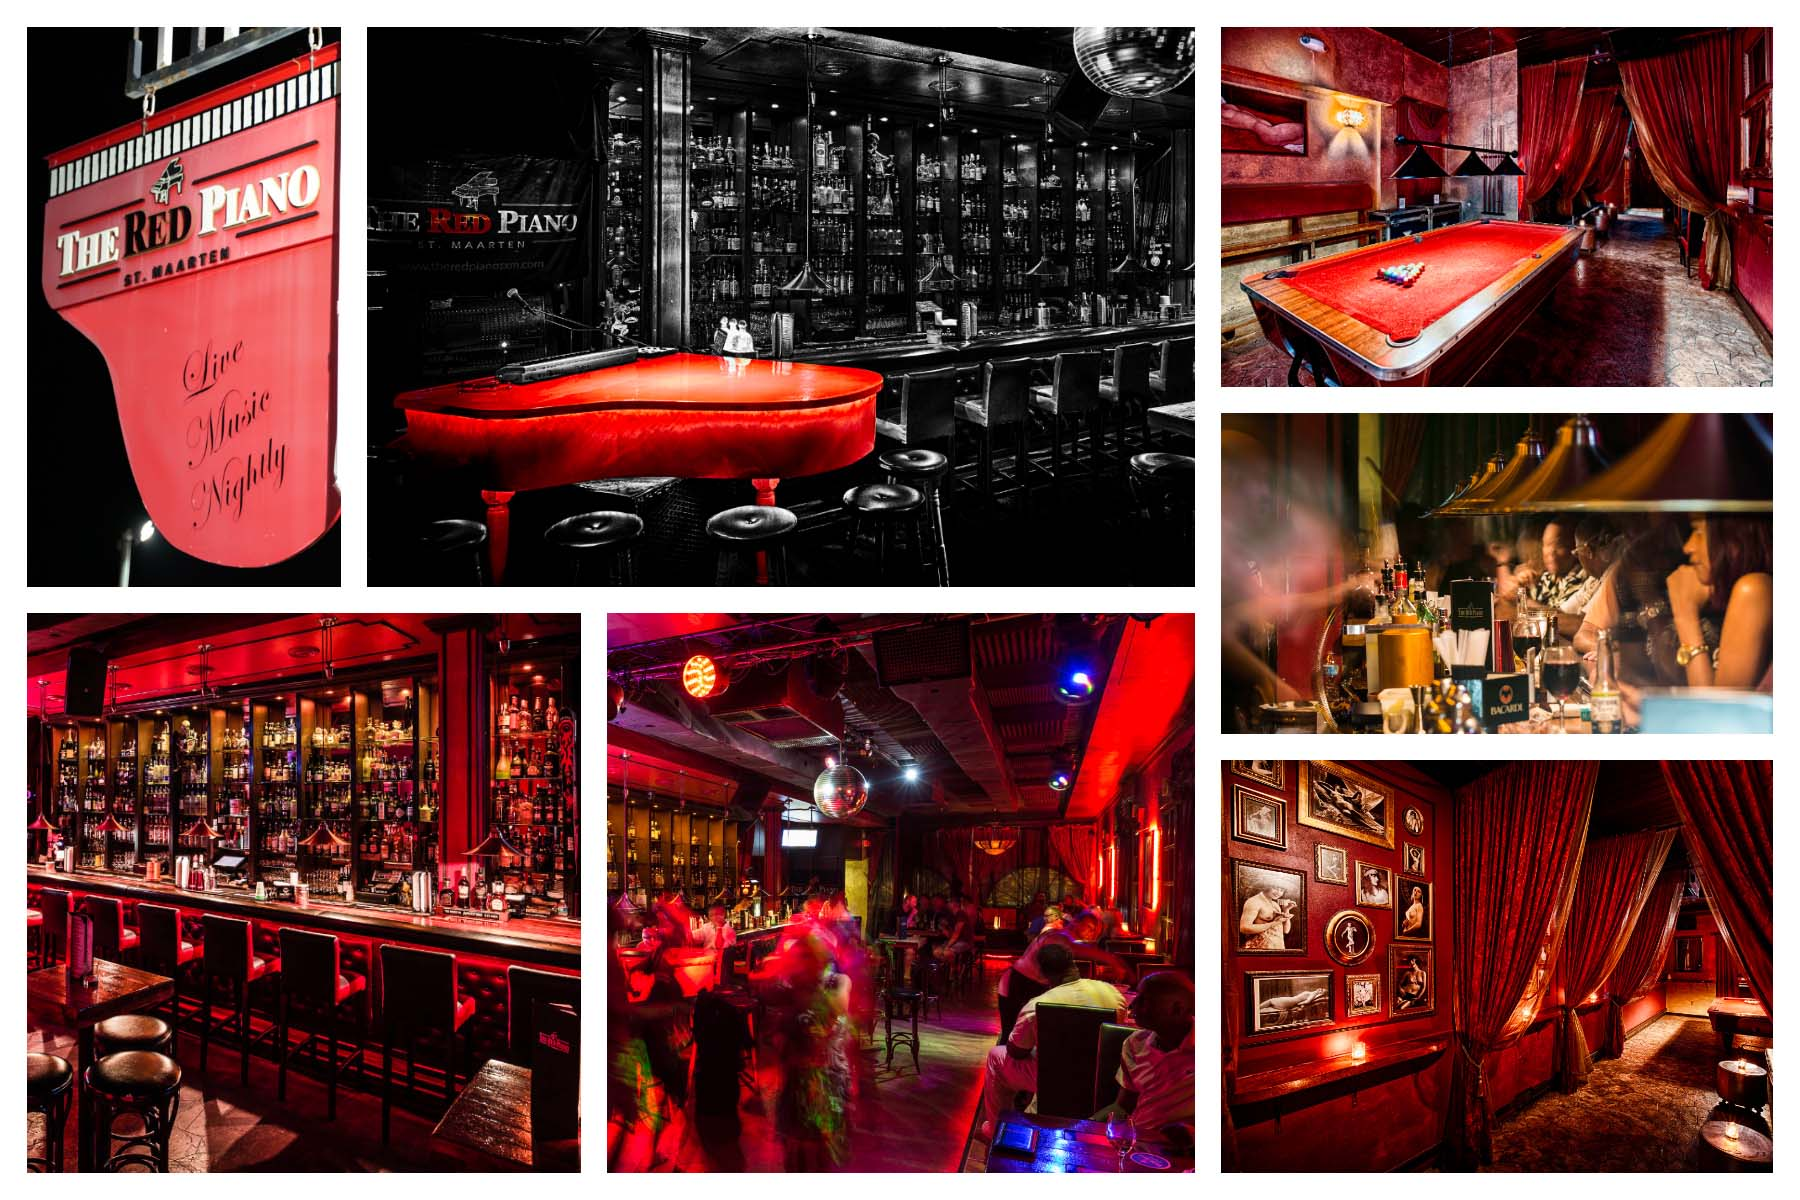 Red Piano SXM: Service & Entertainment - Best live music venue, best piano bar, best pool room. Largest selection of spirits.